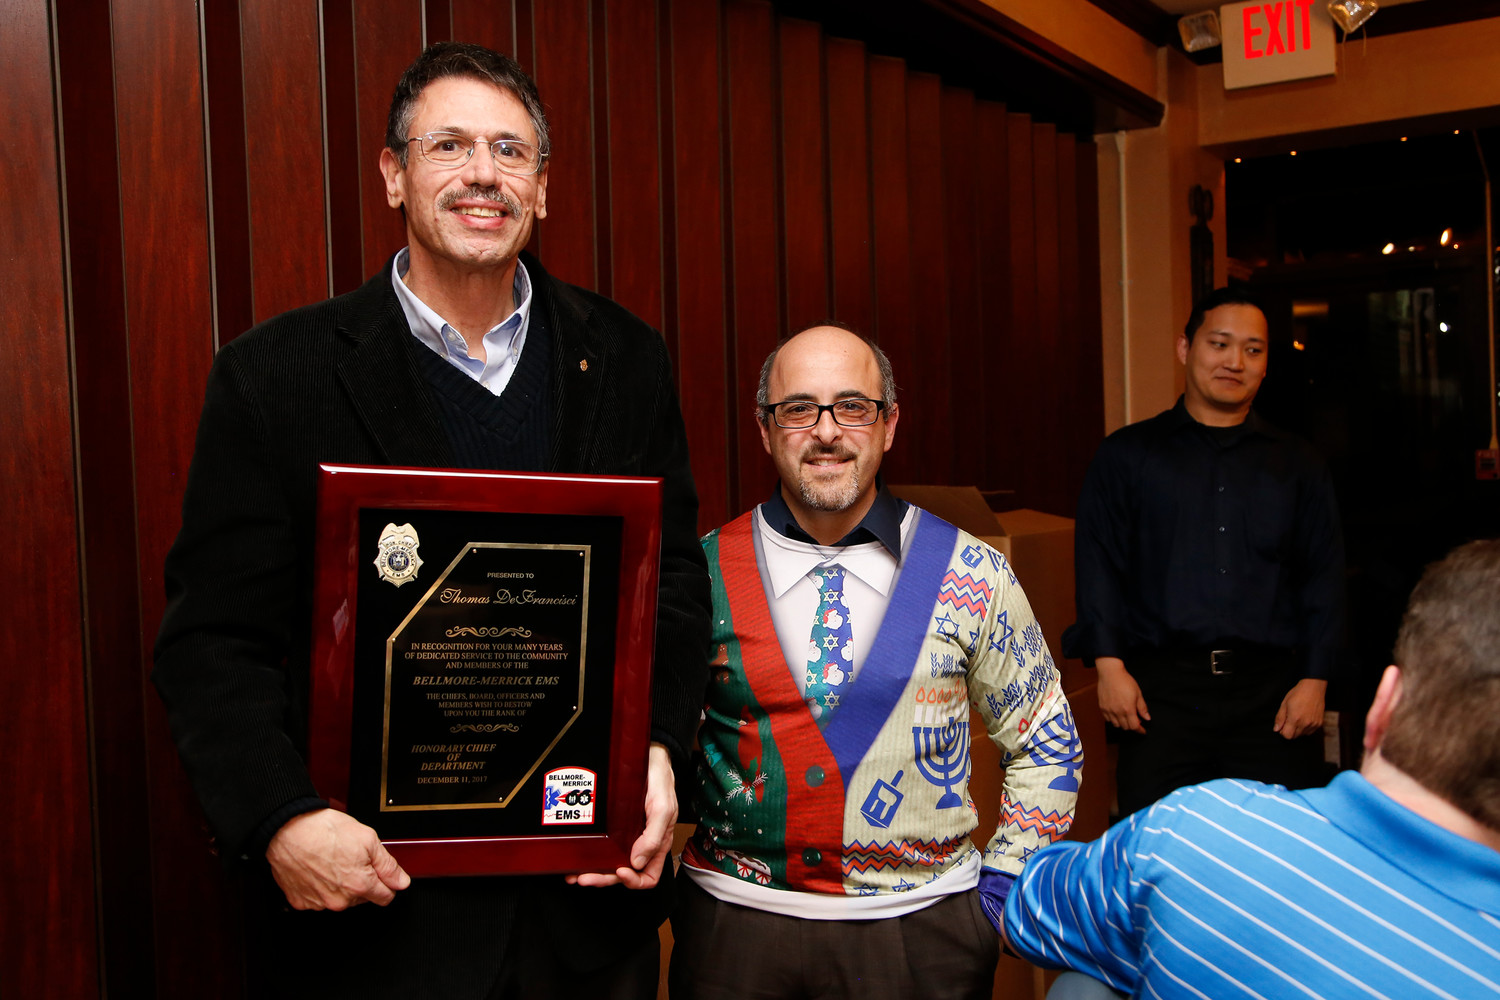 Thomas DeFrancisci, 60, of Bellmore, left, was named an honorary chief of the Bellmore-Merrick Emergency Medical Services at the organization's annual dinner.